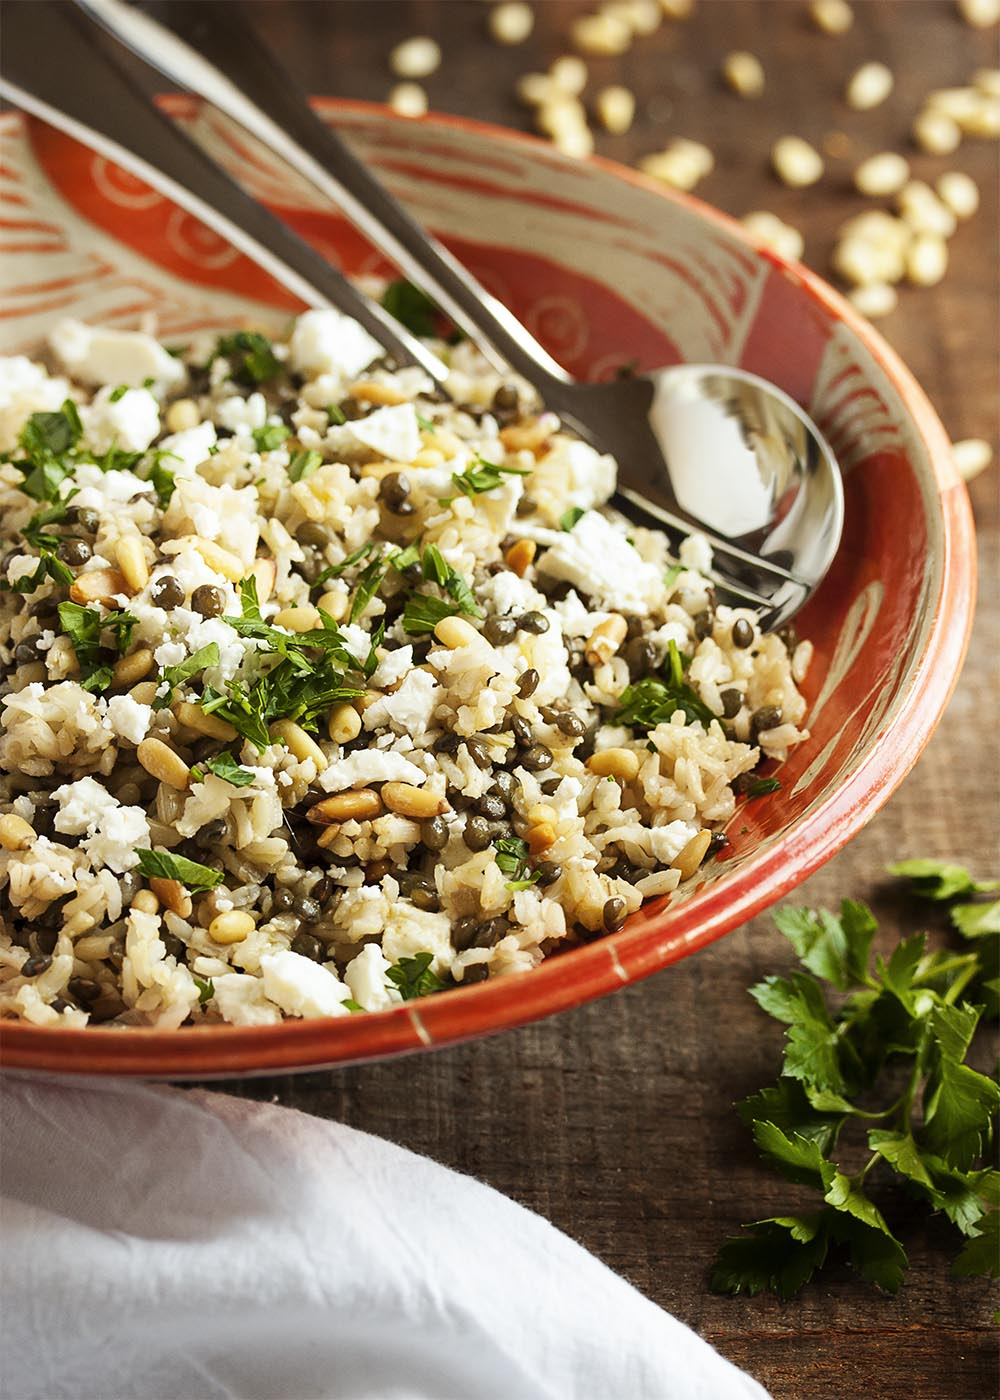 Brown Rice and Green Lentil Salad - This easy salad packs a big nutritional punch. Brown rice, green lentils, pine nuts, arugula and feta combine into a healthy and tasty side dish. | justalittlebitofbacon.com